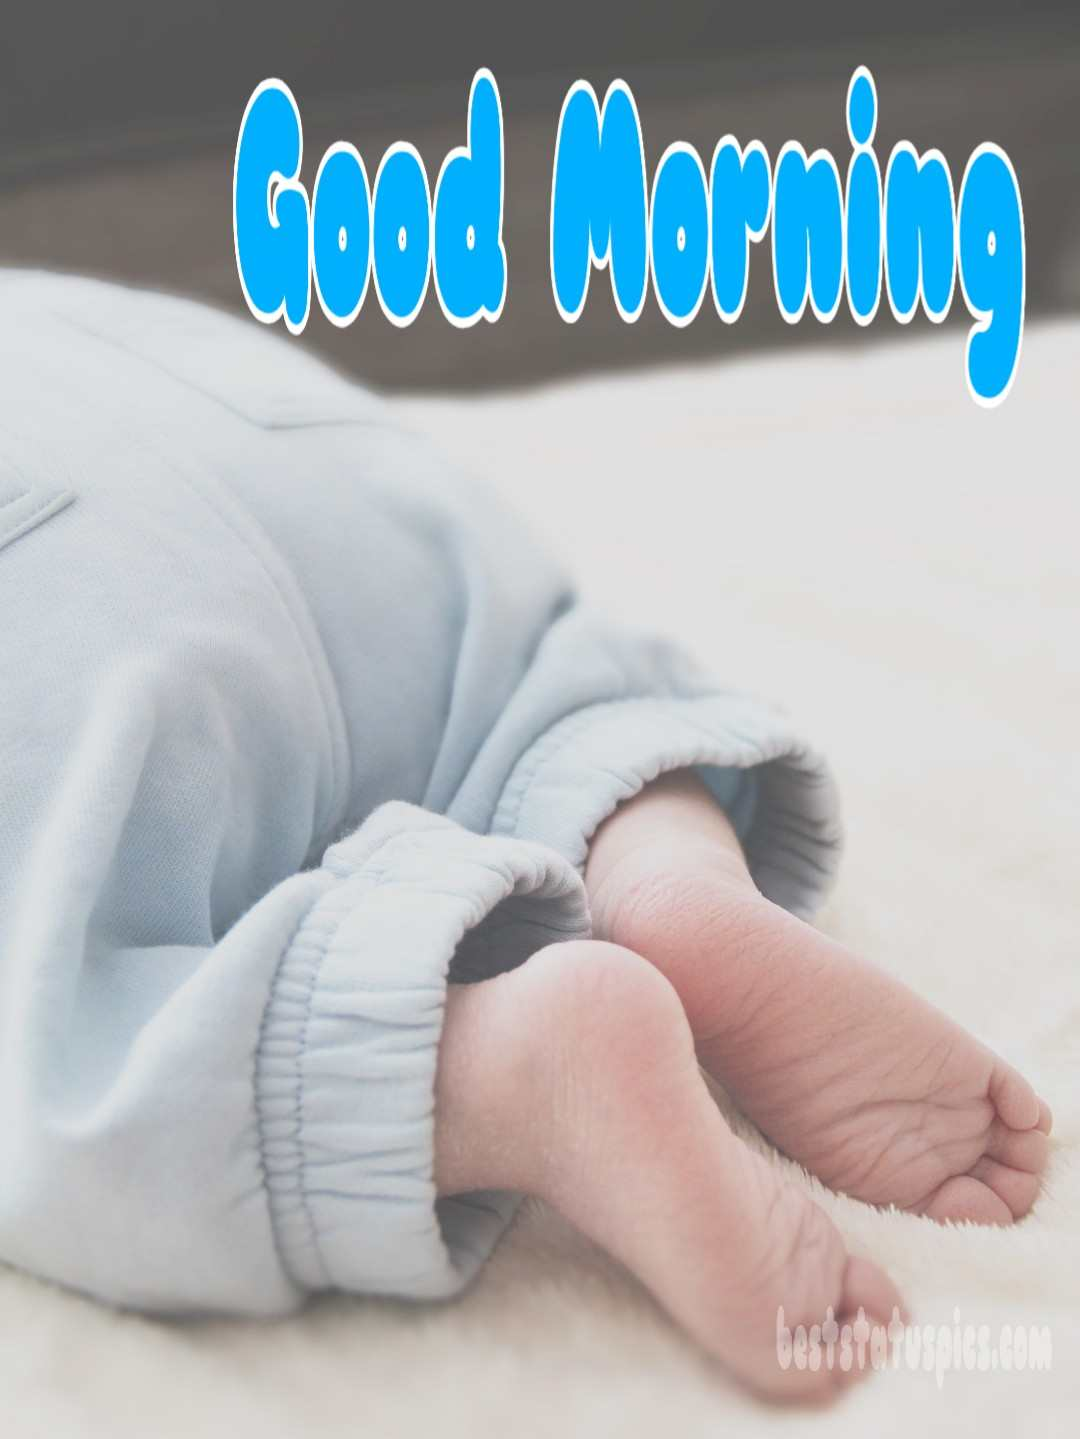 Good morning images with sweet little baby